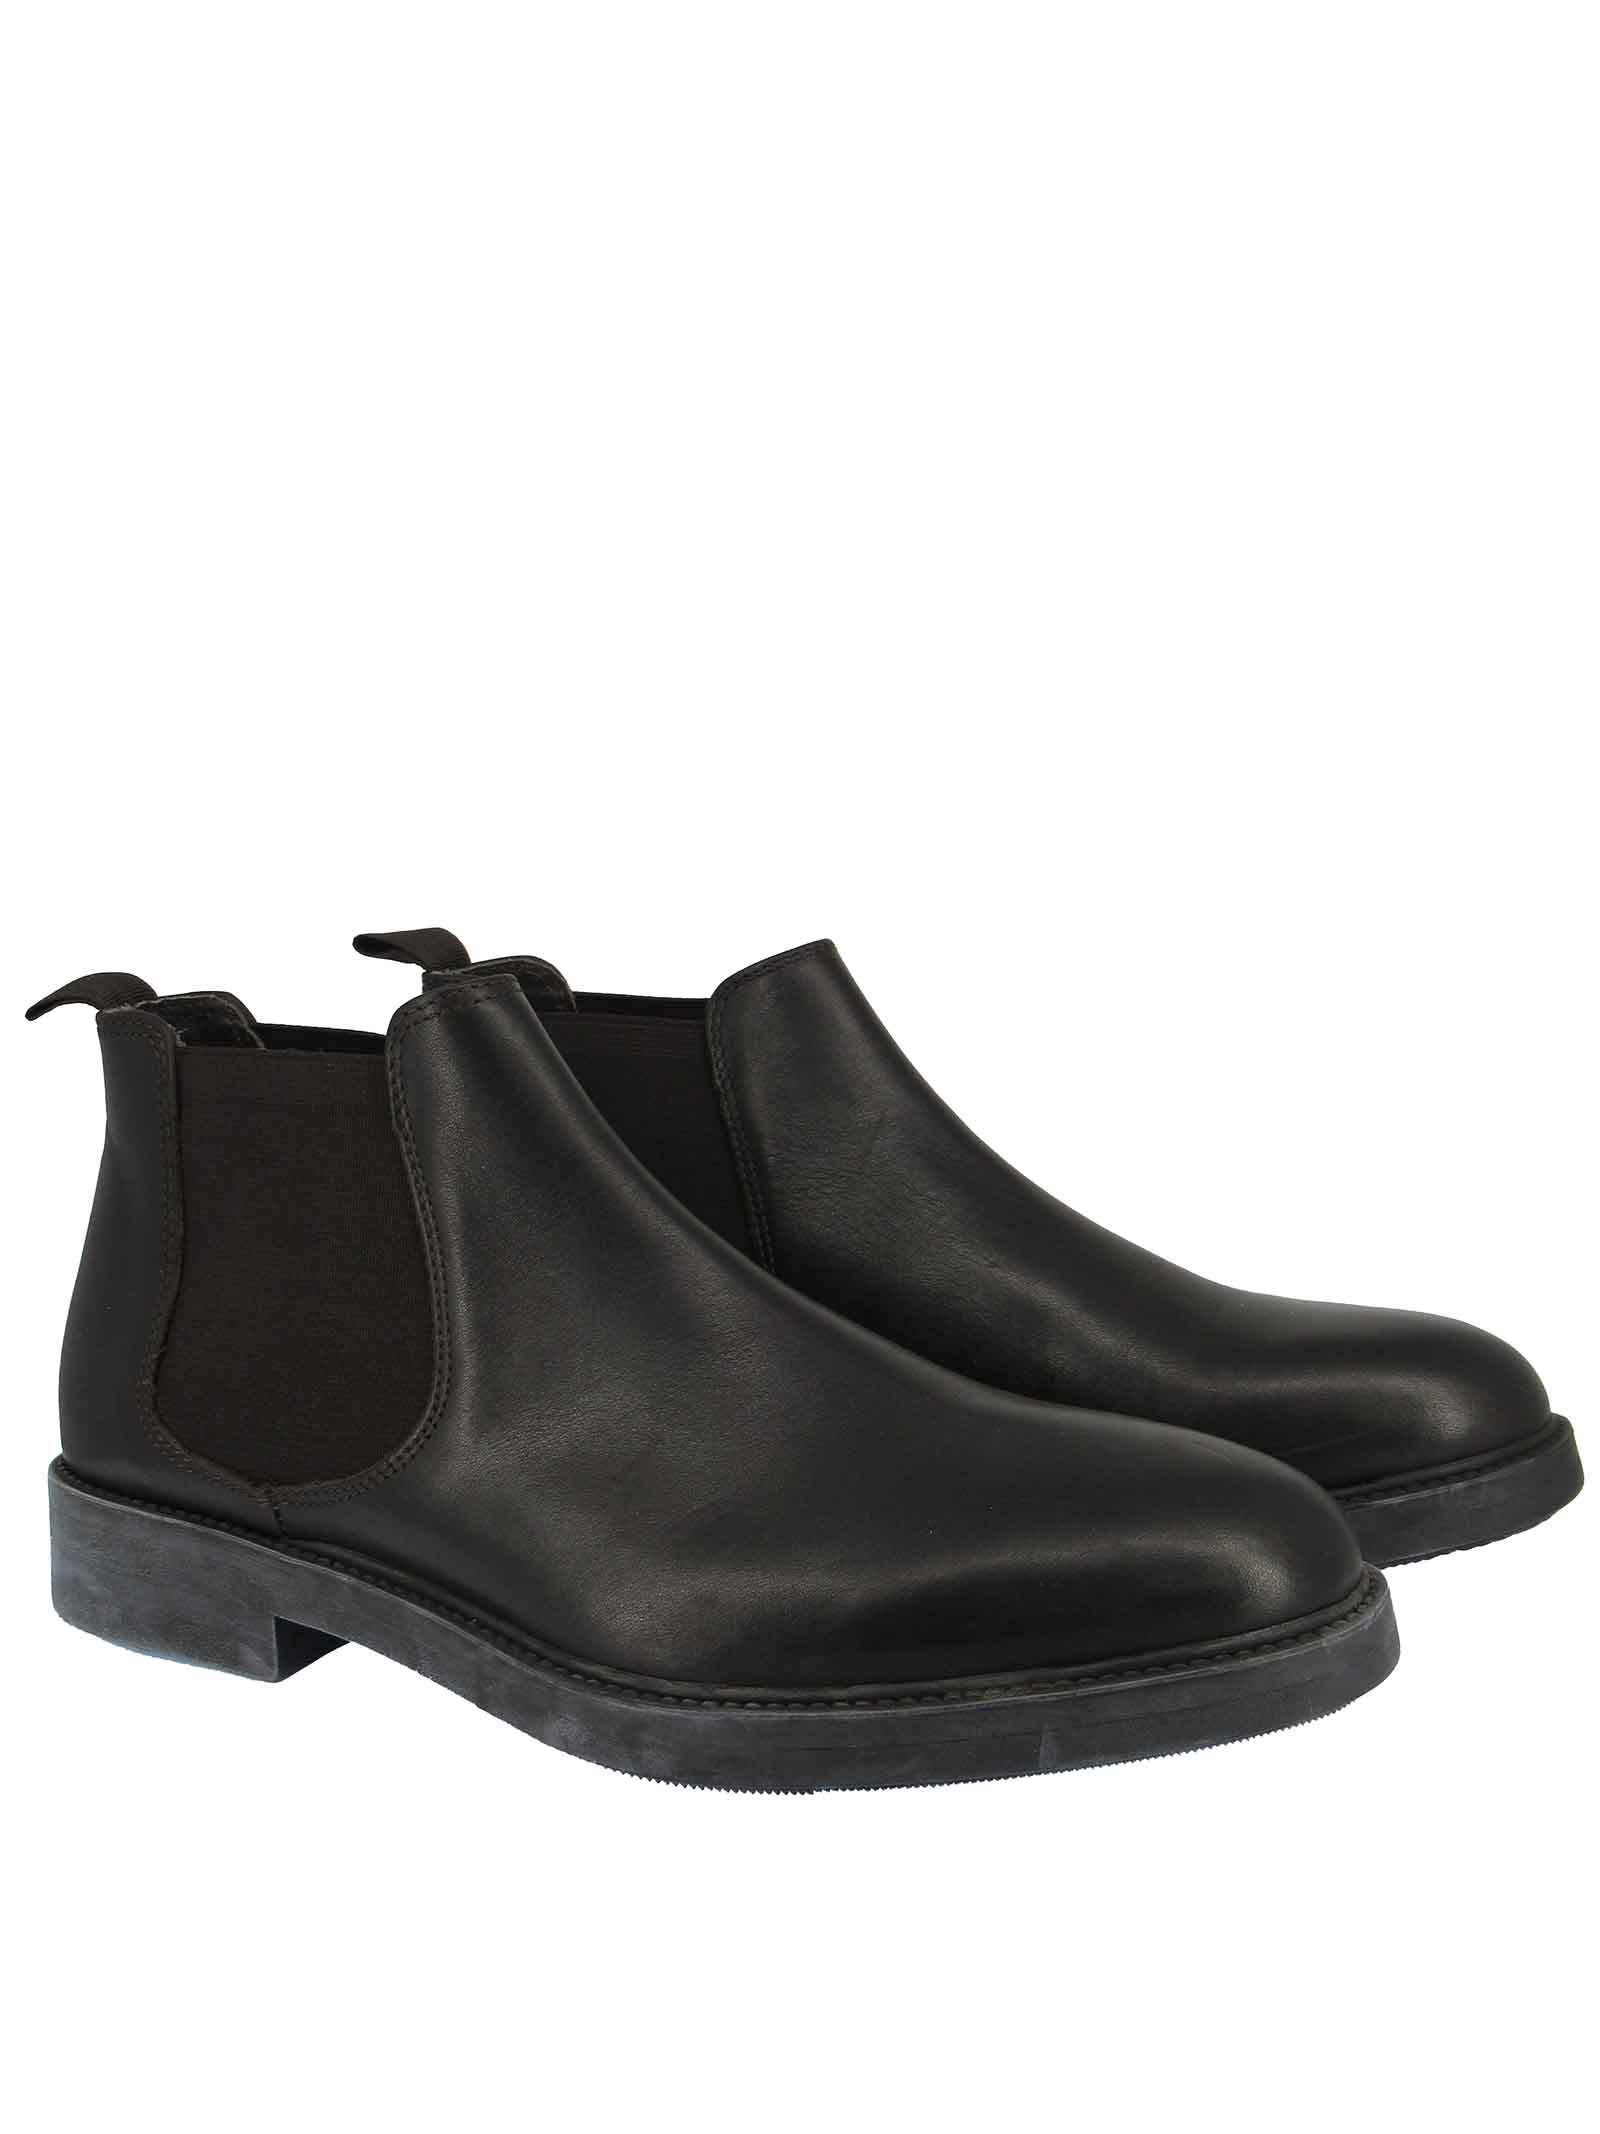 Men's Shoes Beatles in Black Leather with Side Elastic Bands and Waterproof Rubber Sole Florsheim   Ankle Boots   5185901